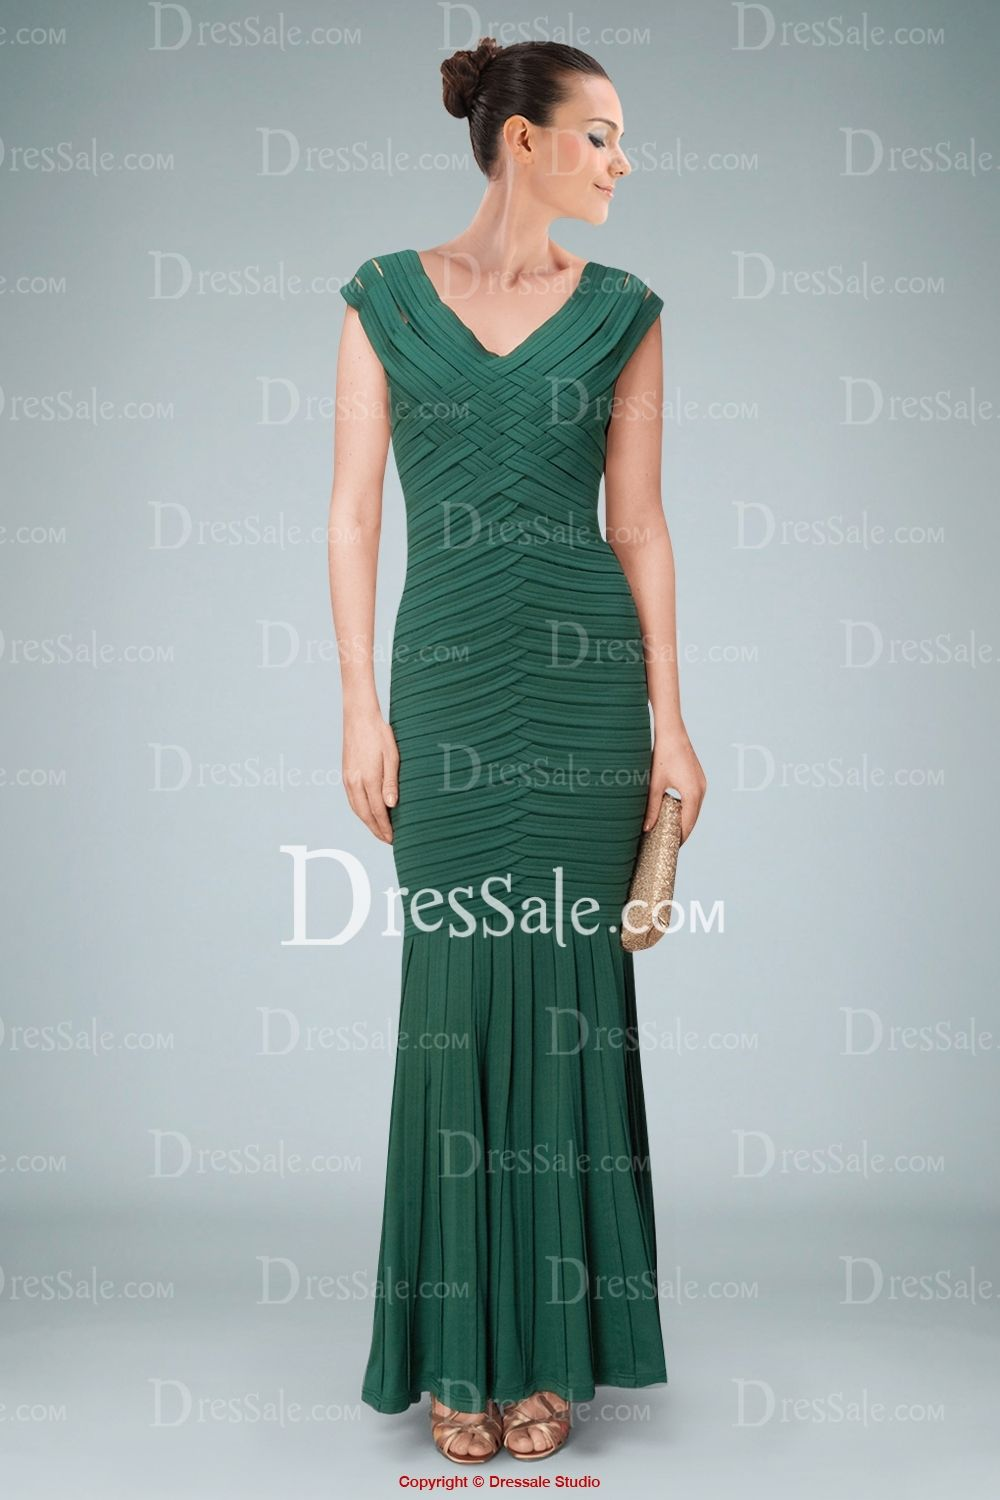 Outstanding Mermaid Dress Featuring Plaids and Crisscross Pleats in ...